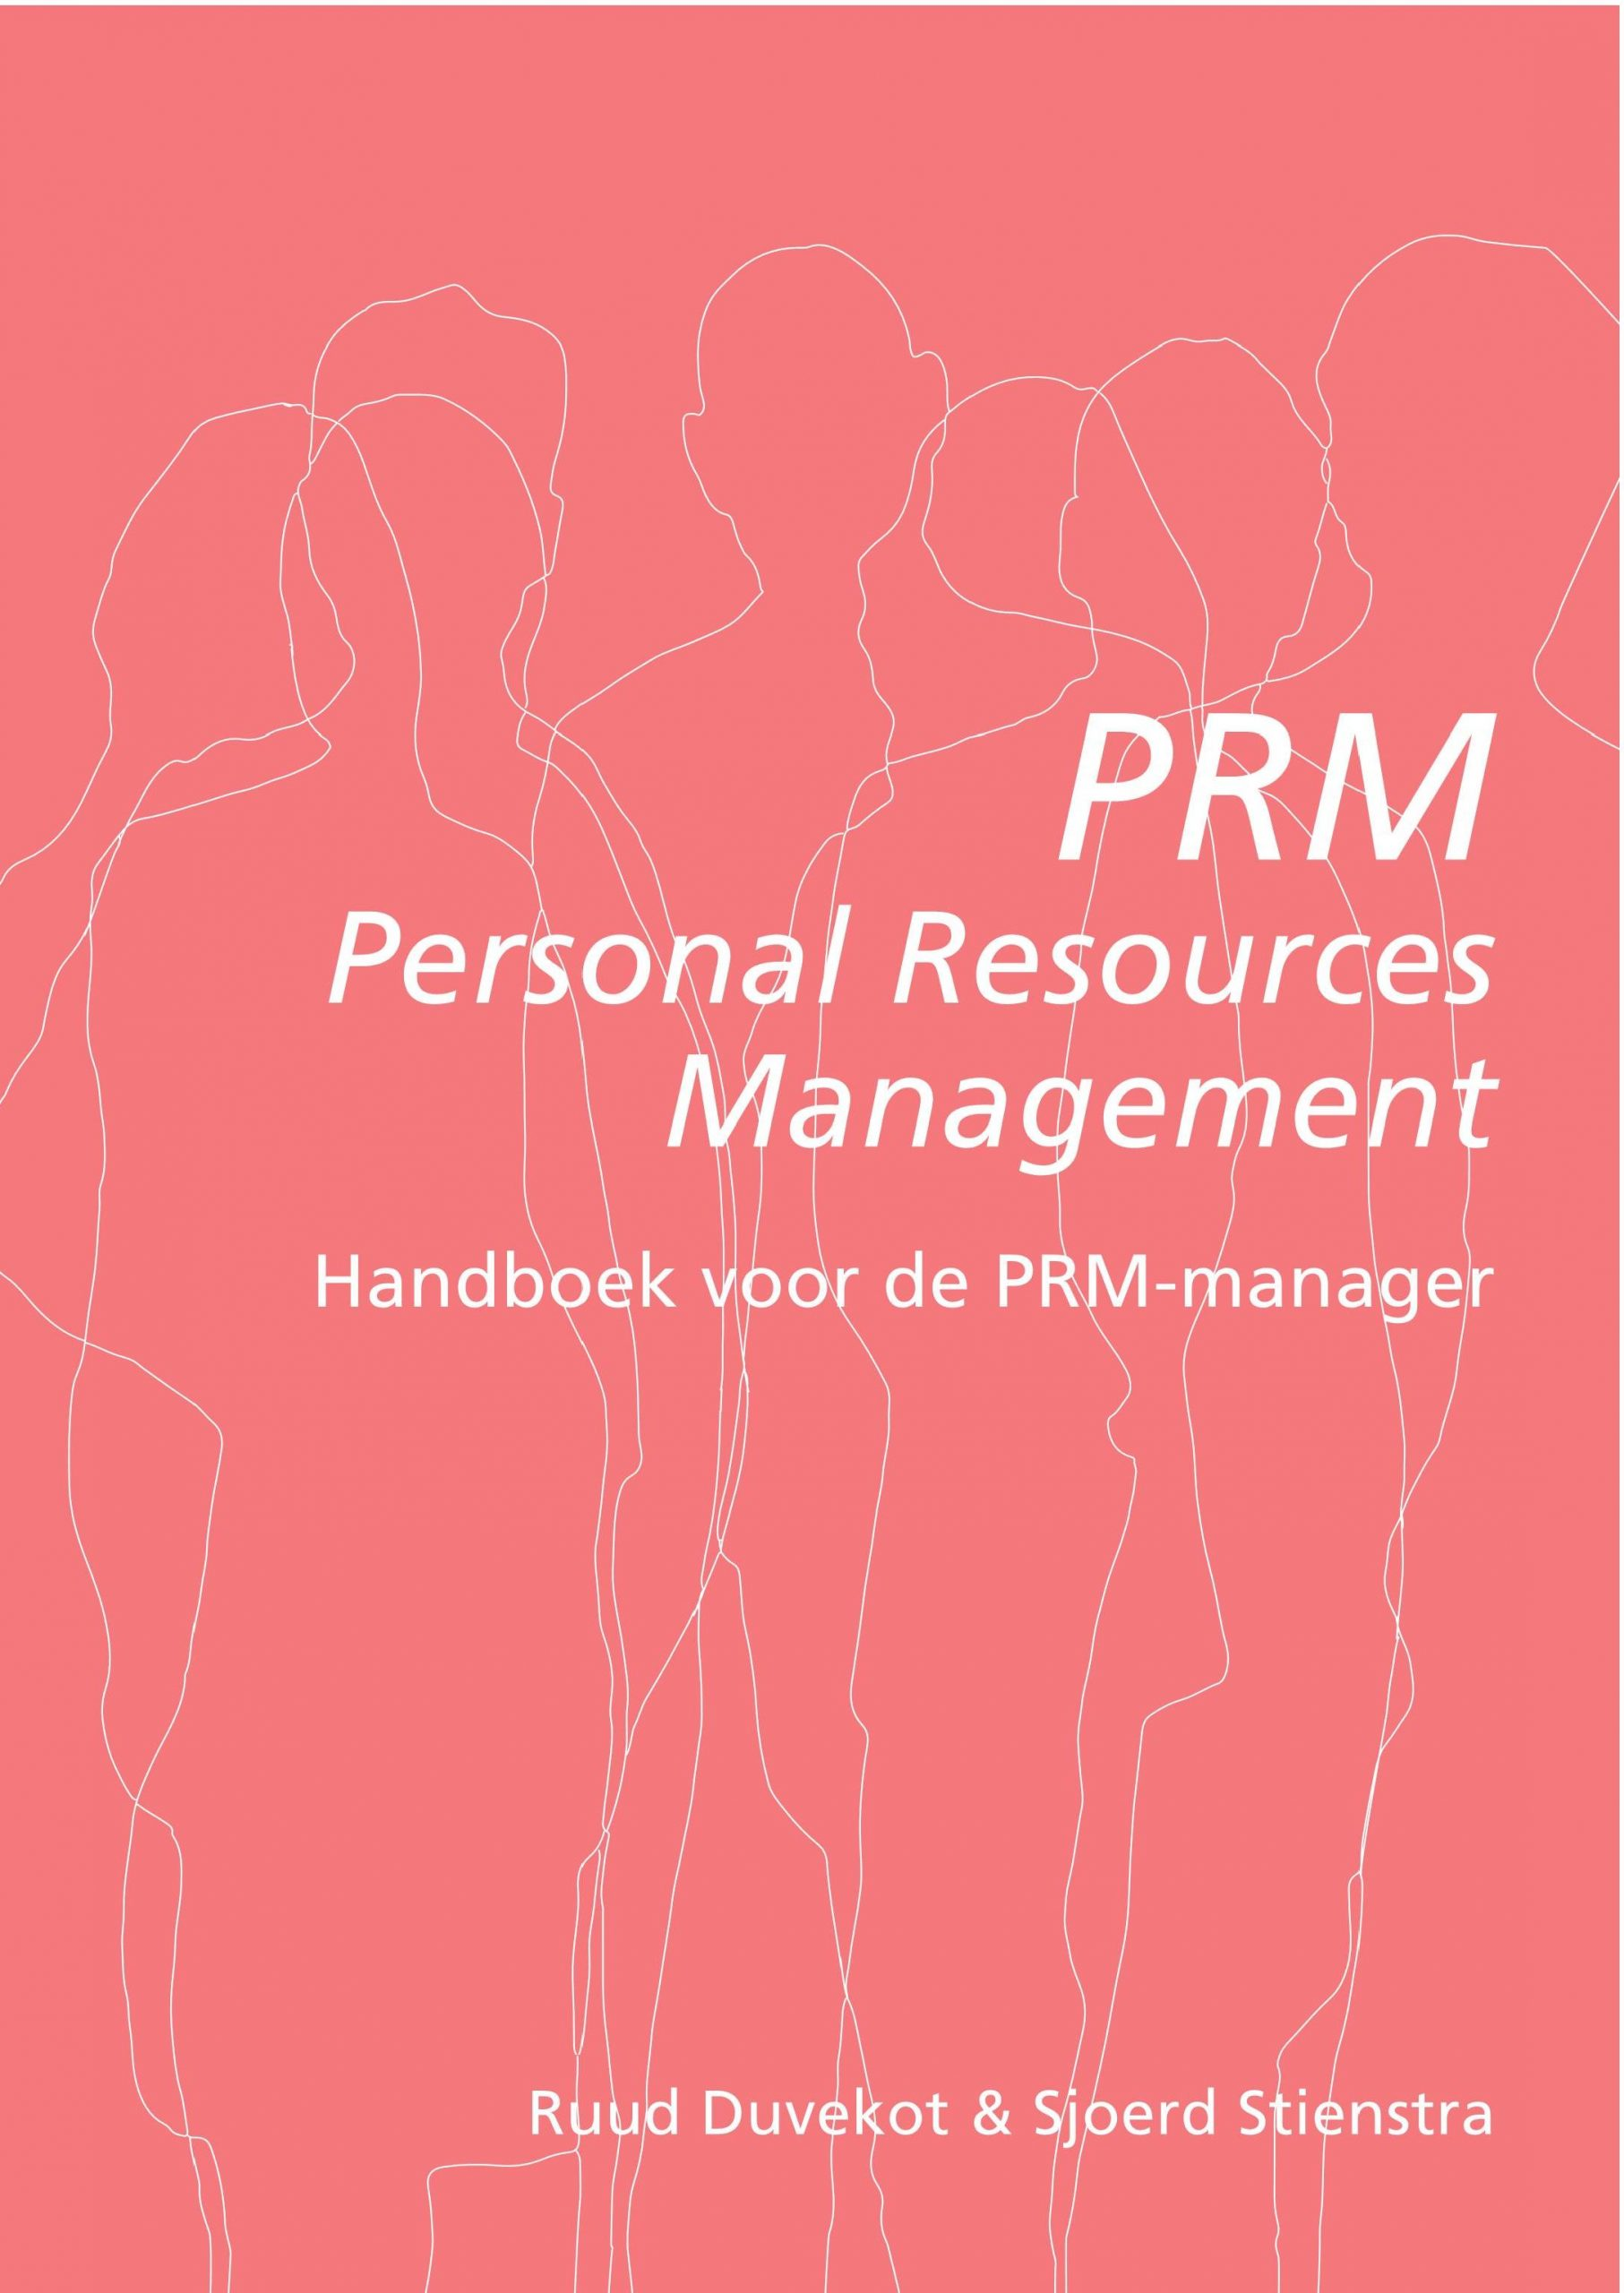 PRM – Personal Resources Management